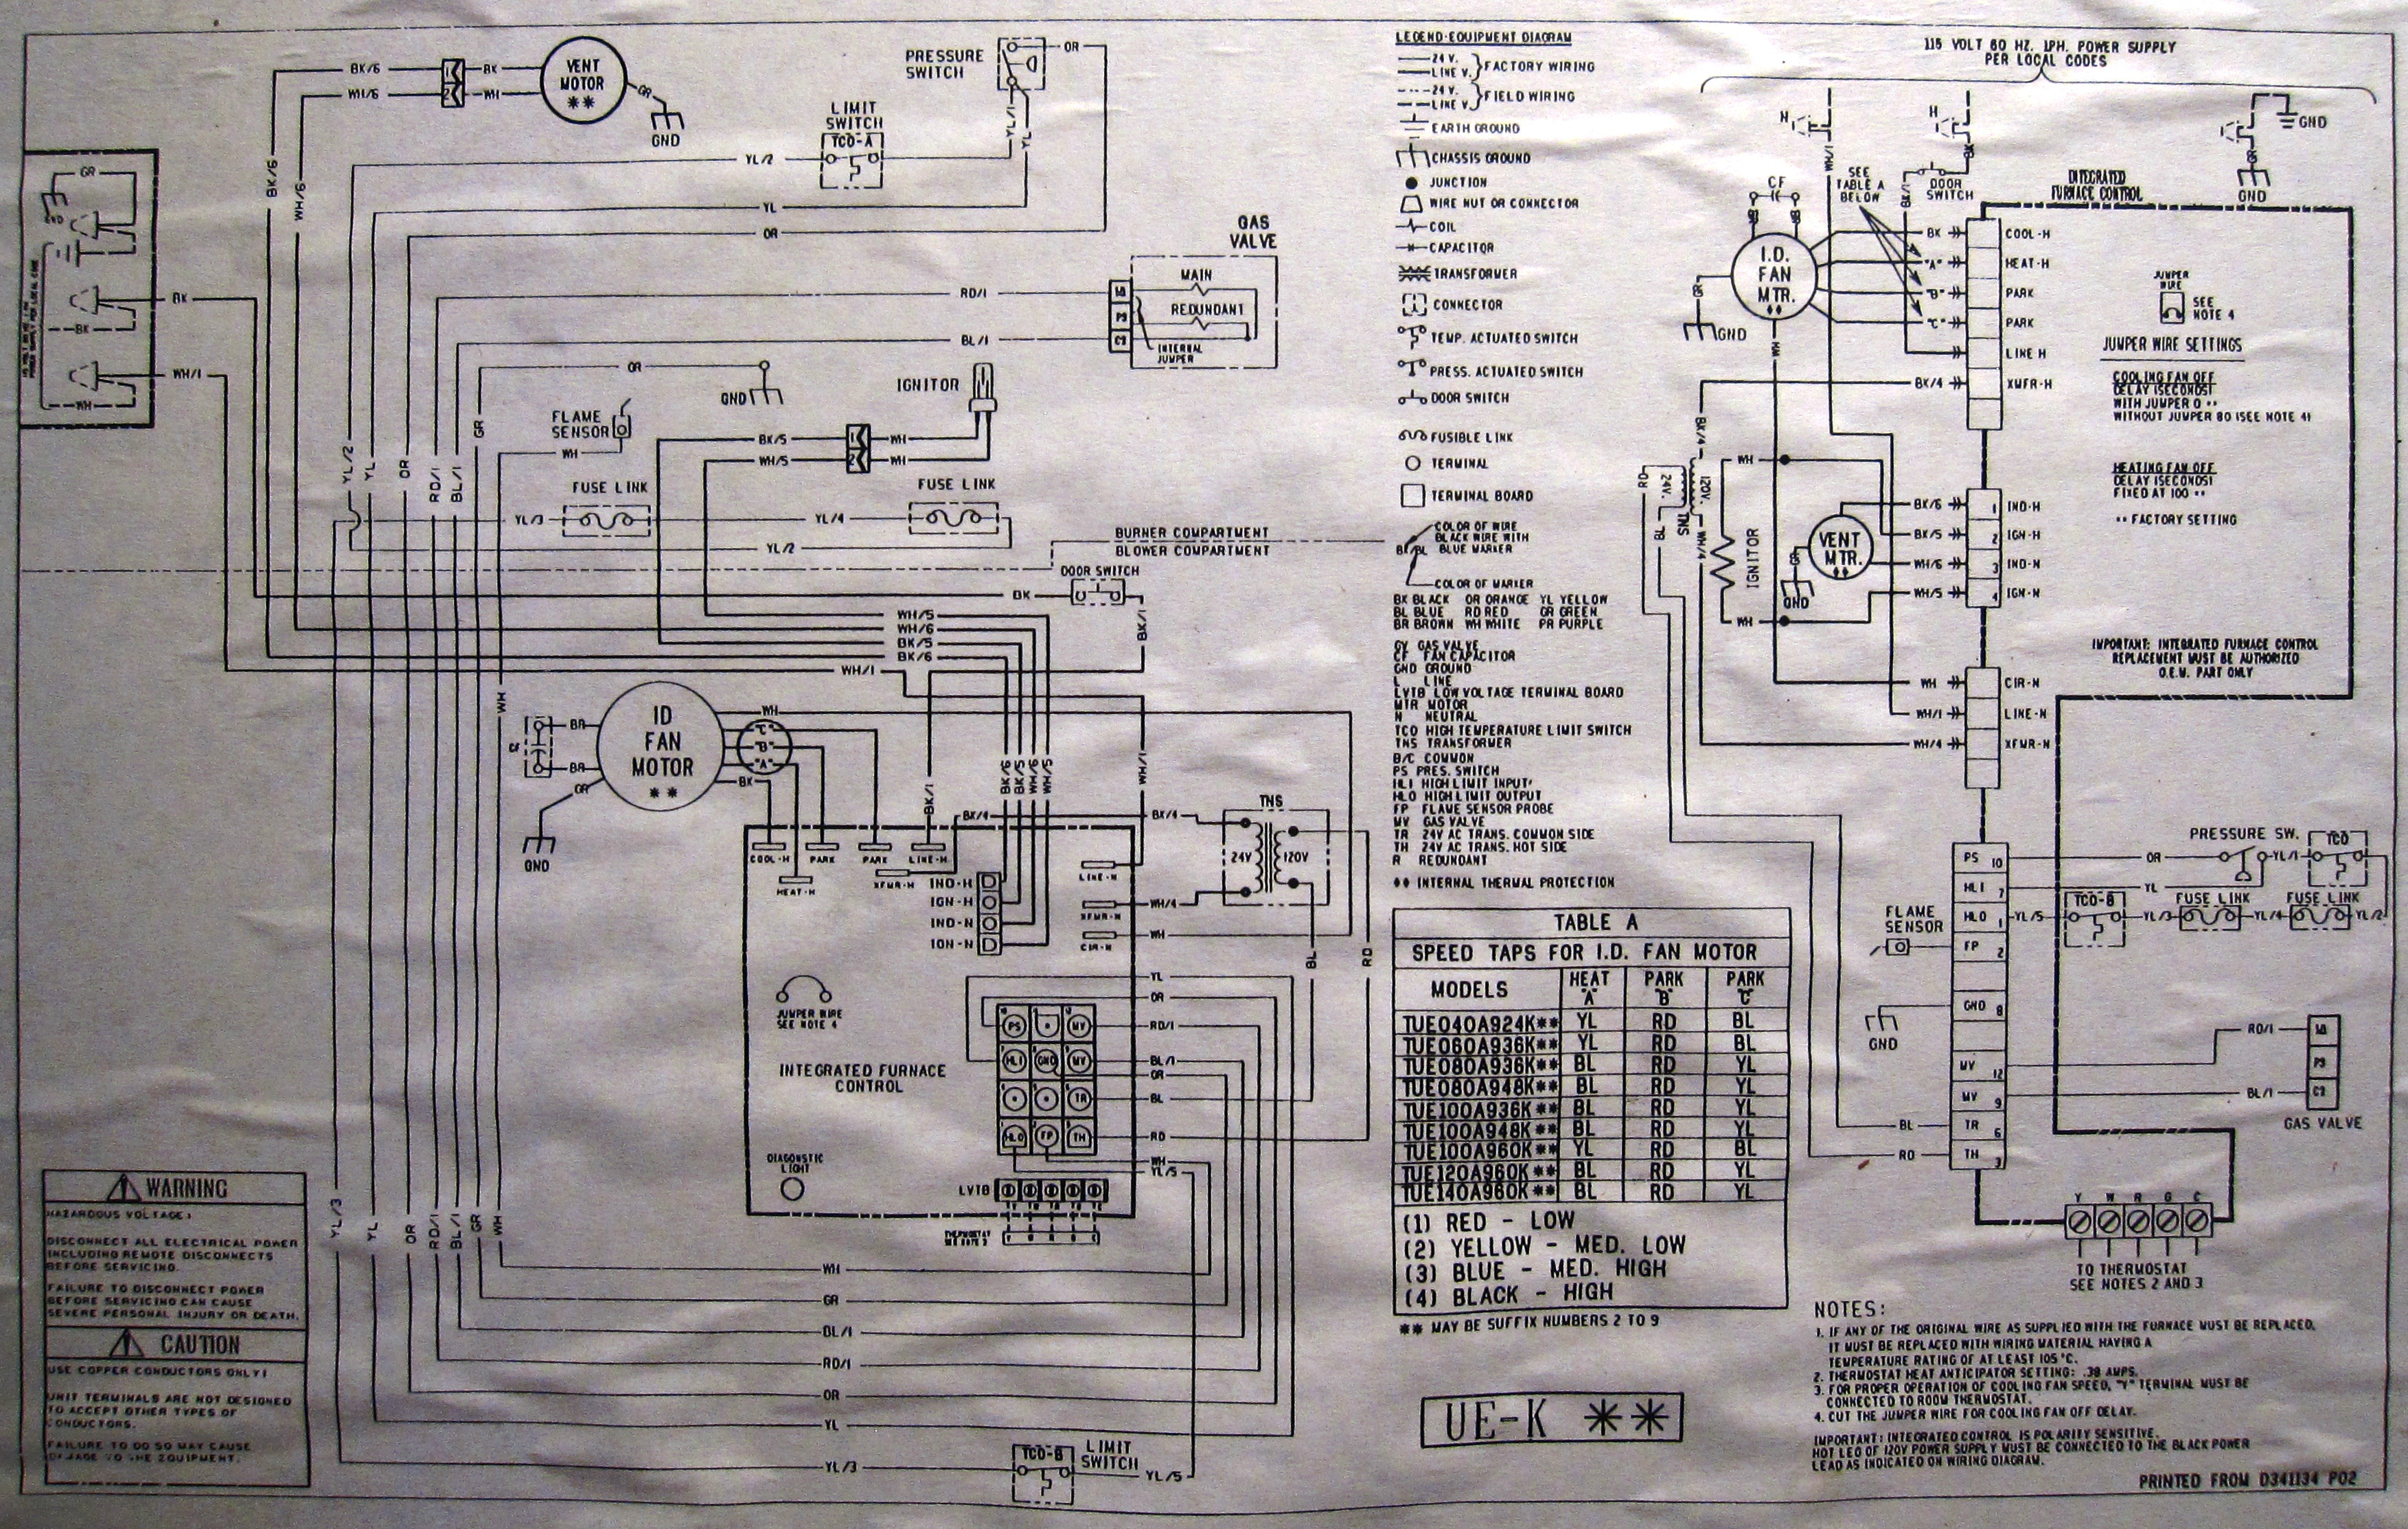 boiler control wiring diagrams 06 dodge magnum radio diagram losing power at one thermostat of a two zone system